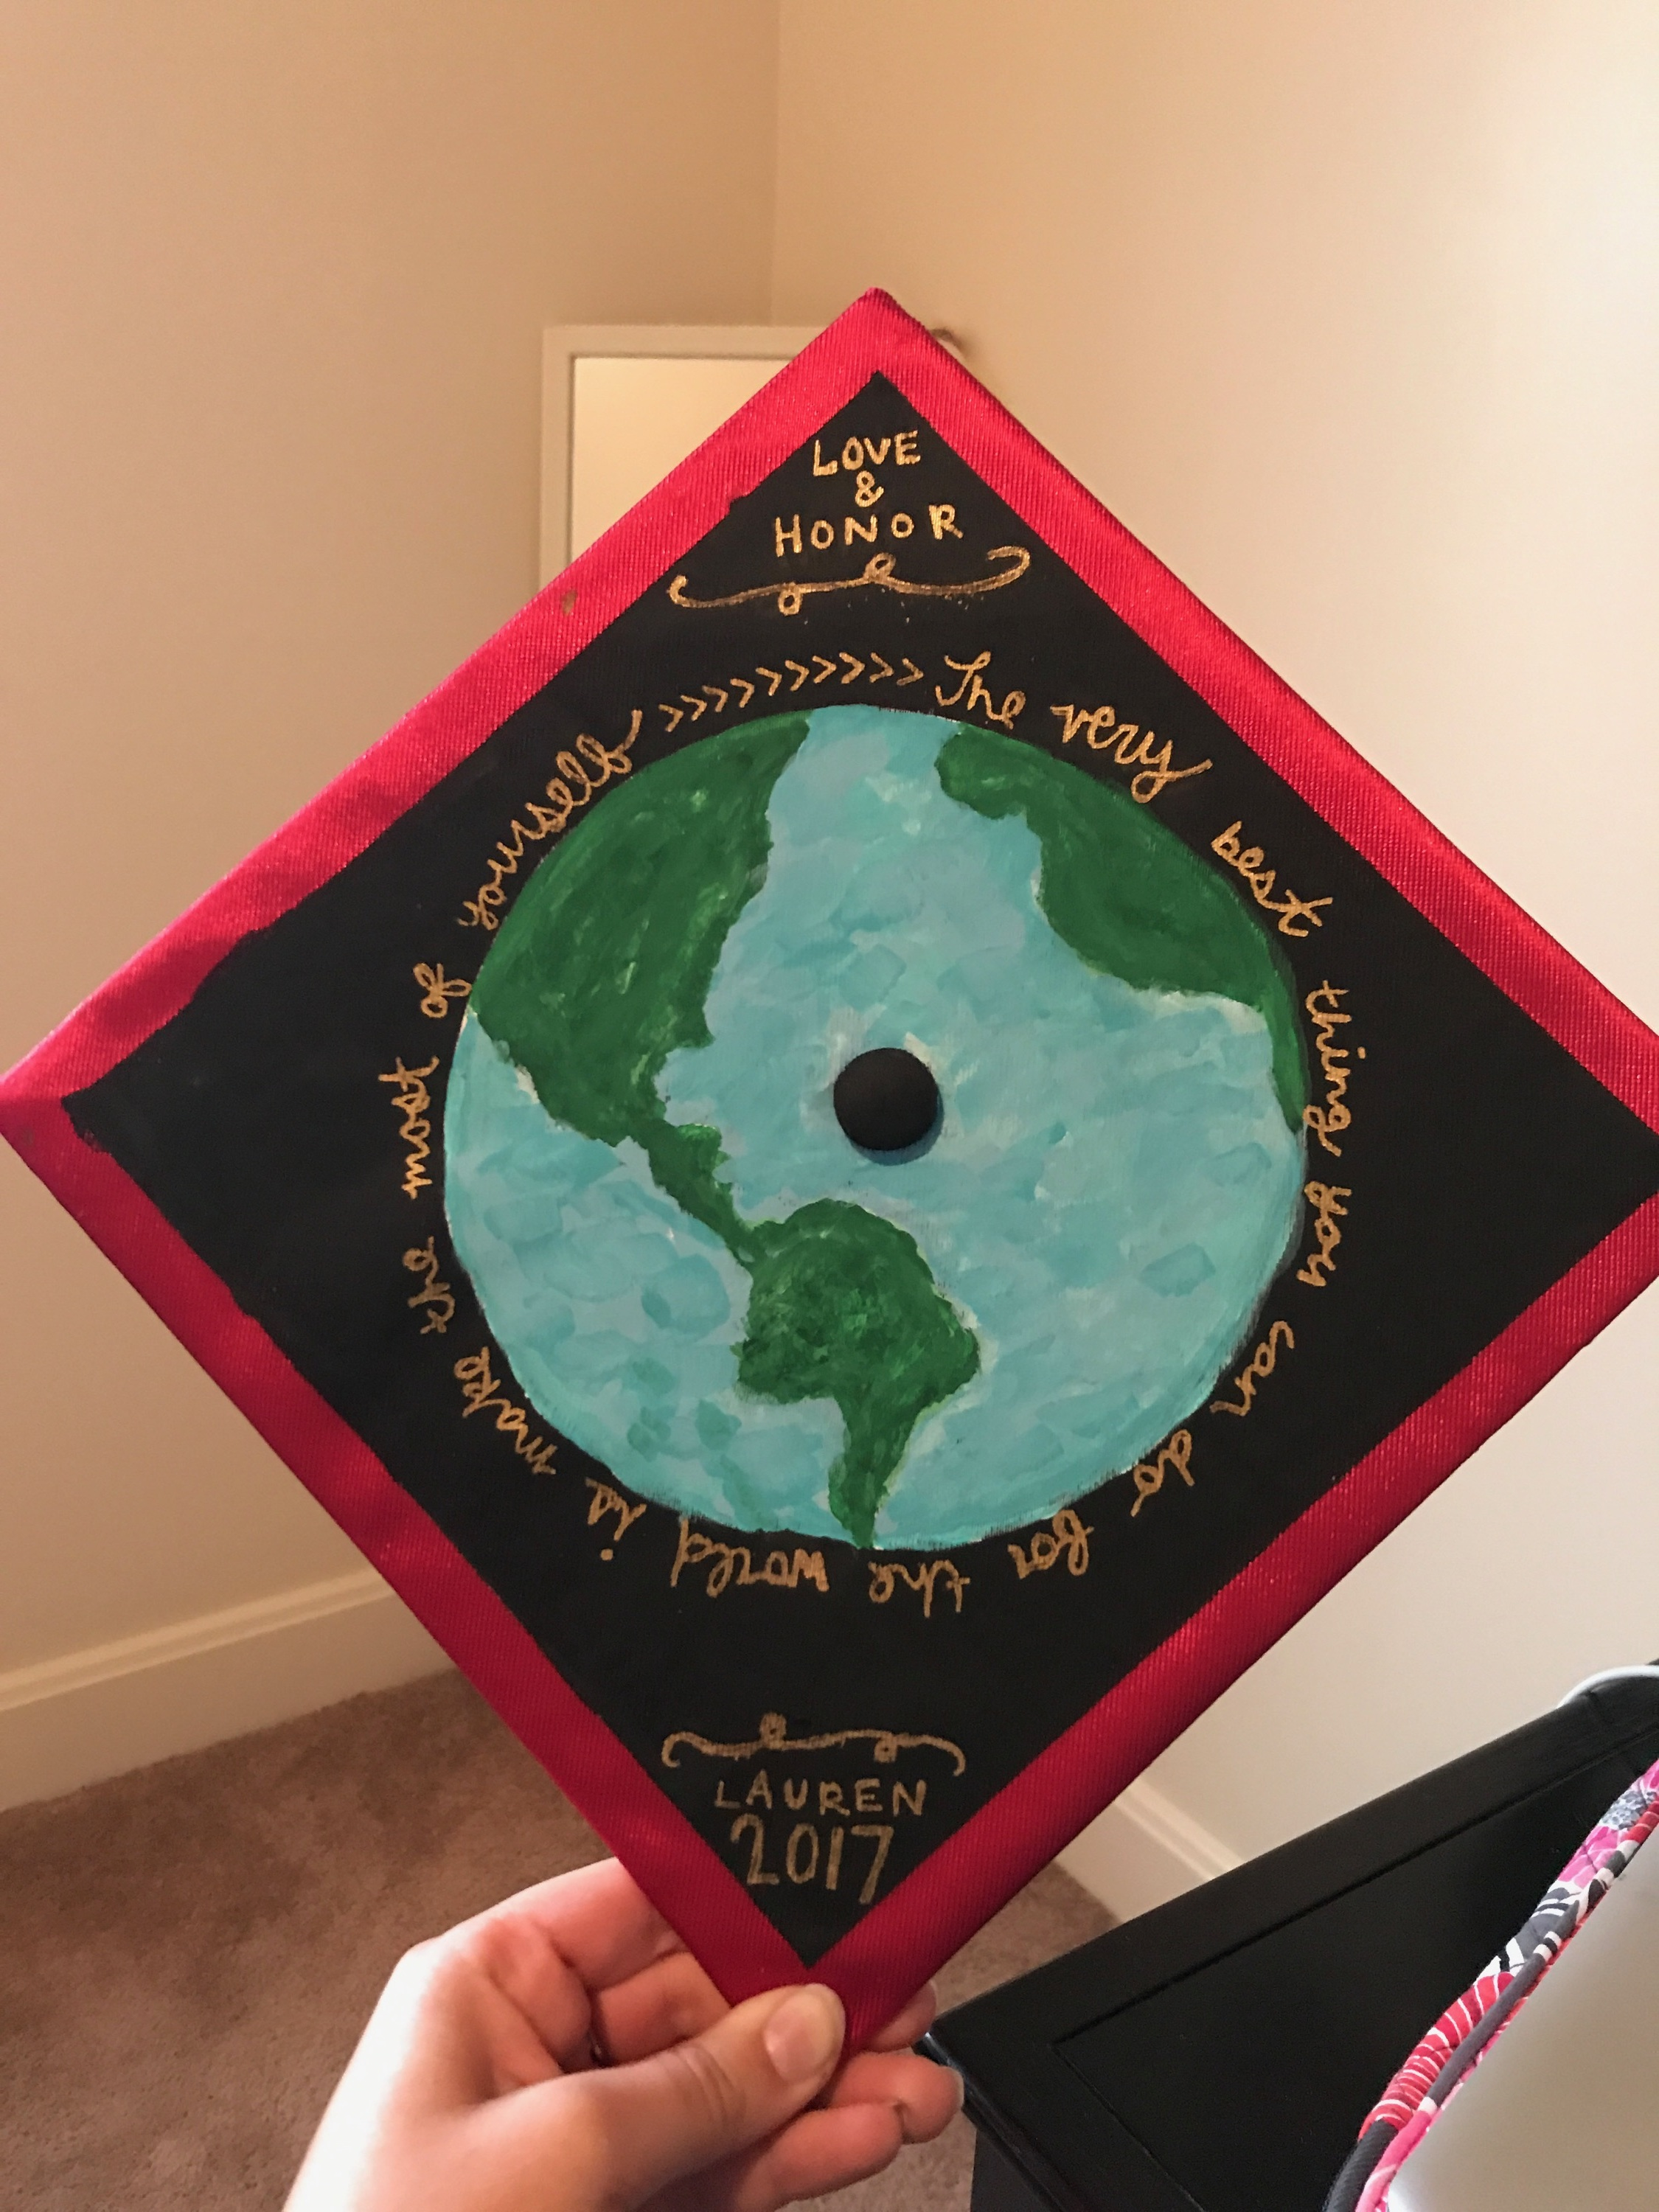 Lauren's graduation cap.